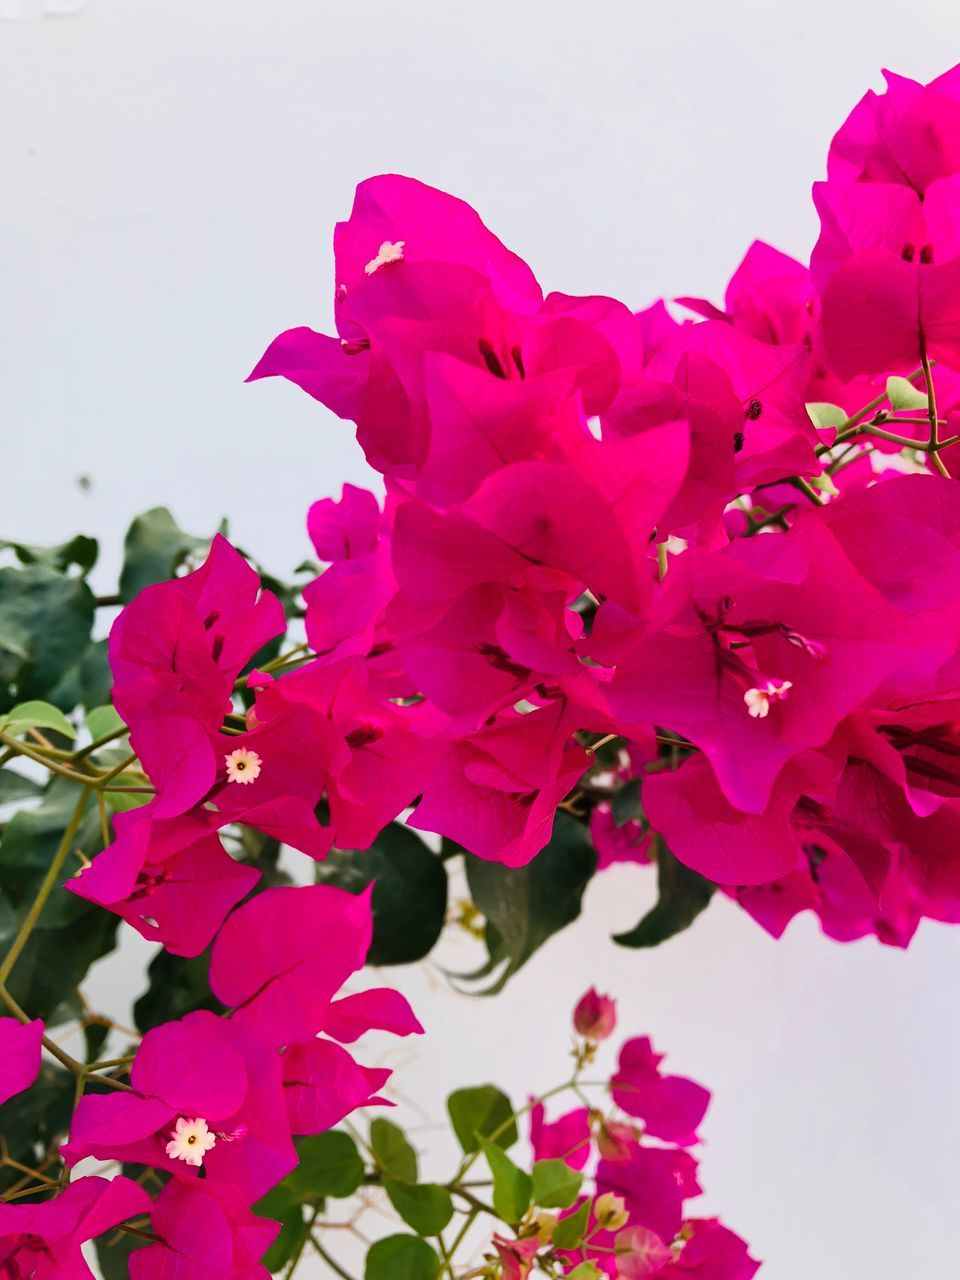 flowering plant, flower, plant, fragility, vulnerability, beauty in nature, freshness, growth, petal, pink color, close-up, inflorescence, no people, flower head, nature, sky, bougainvillea, blossom, day, springtime, pollen, spring